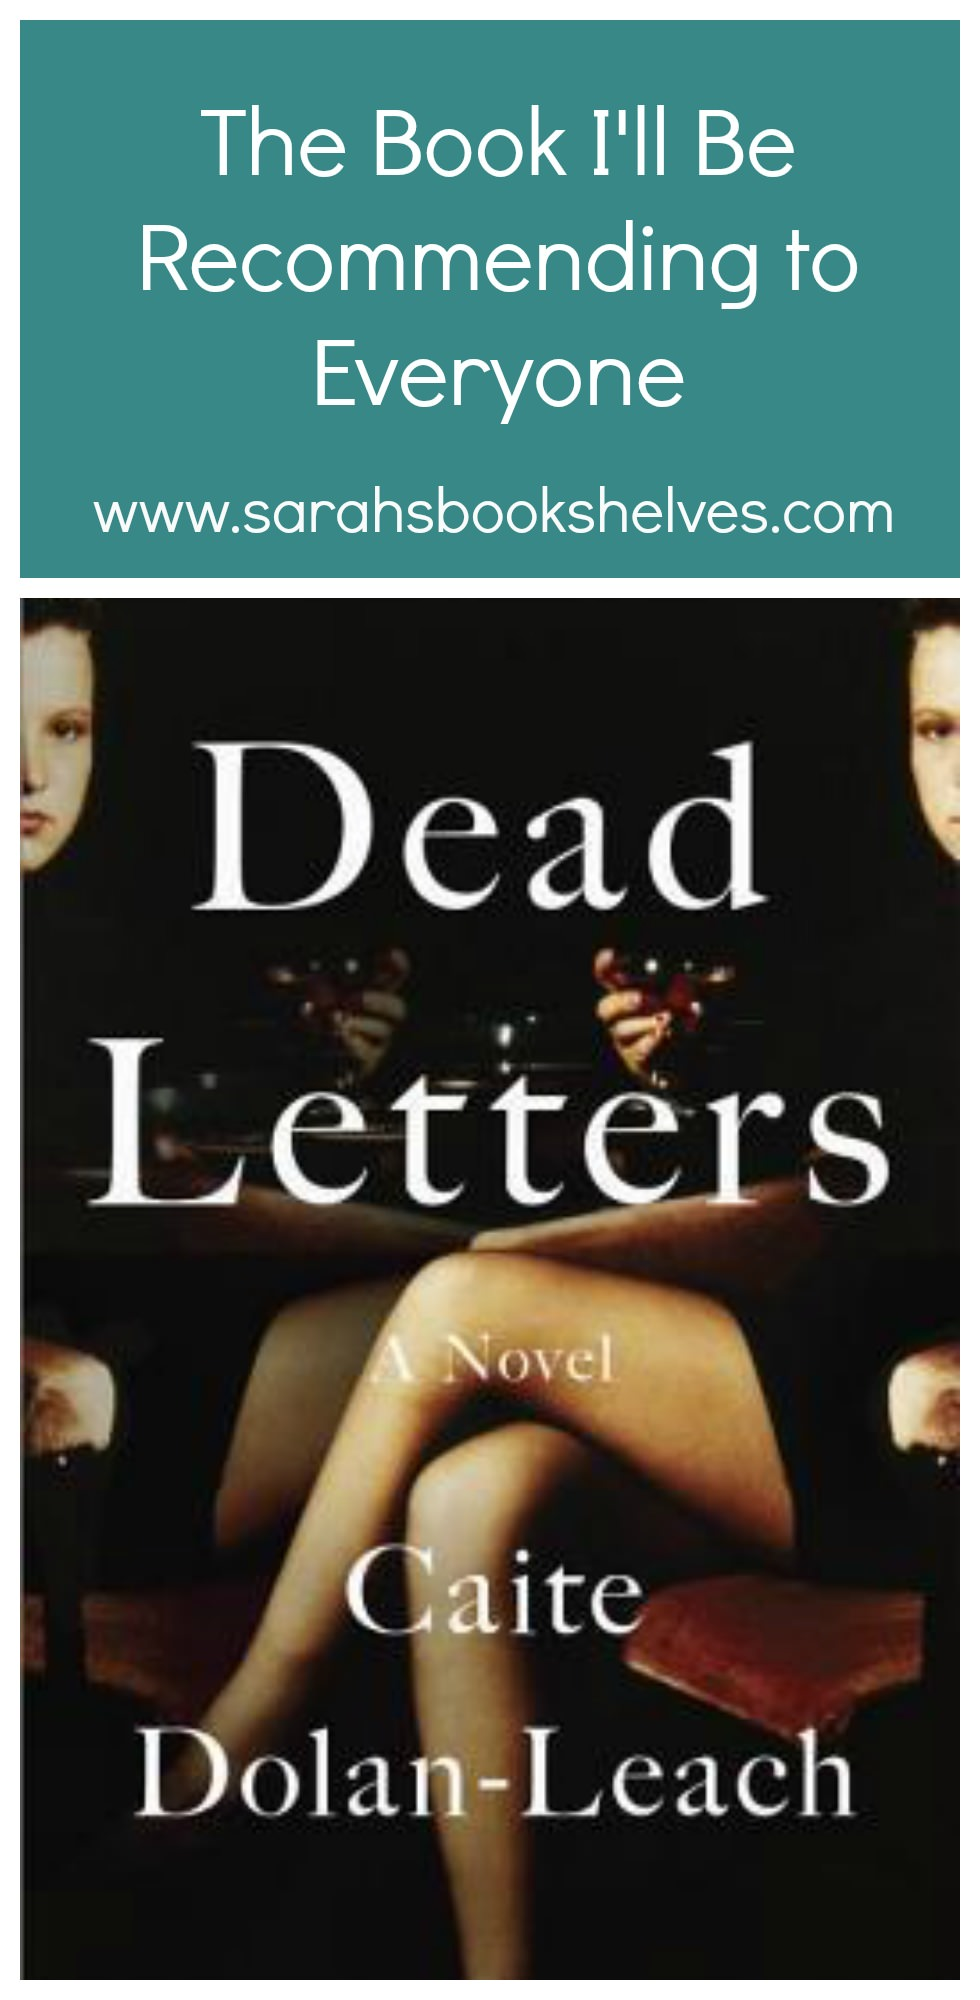 Dead Letters has absolutely everything I look for in a book!